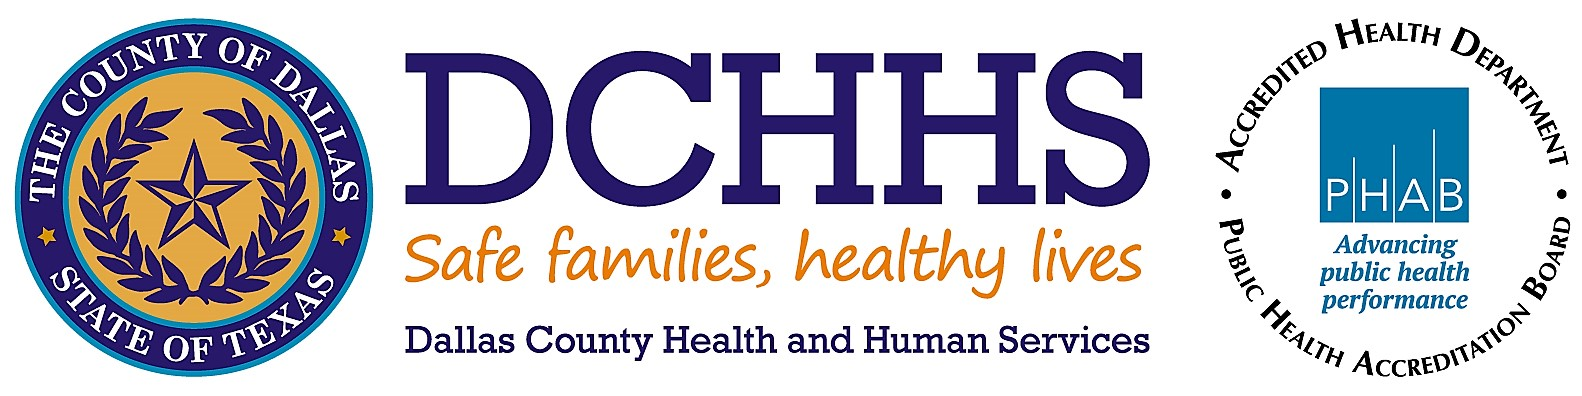 Dallas County Health & Human Services